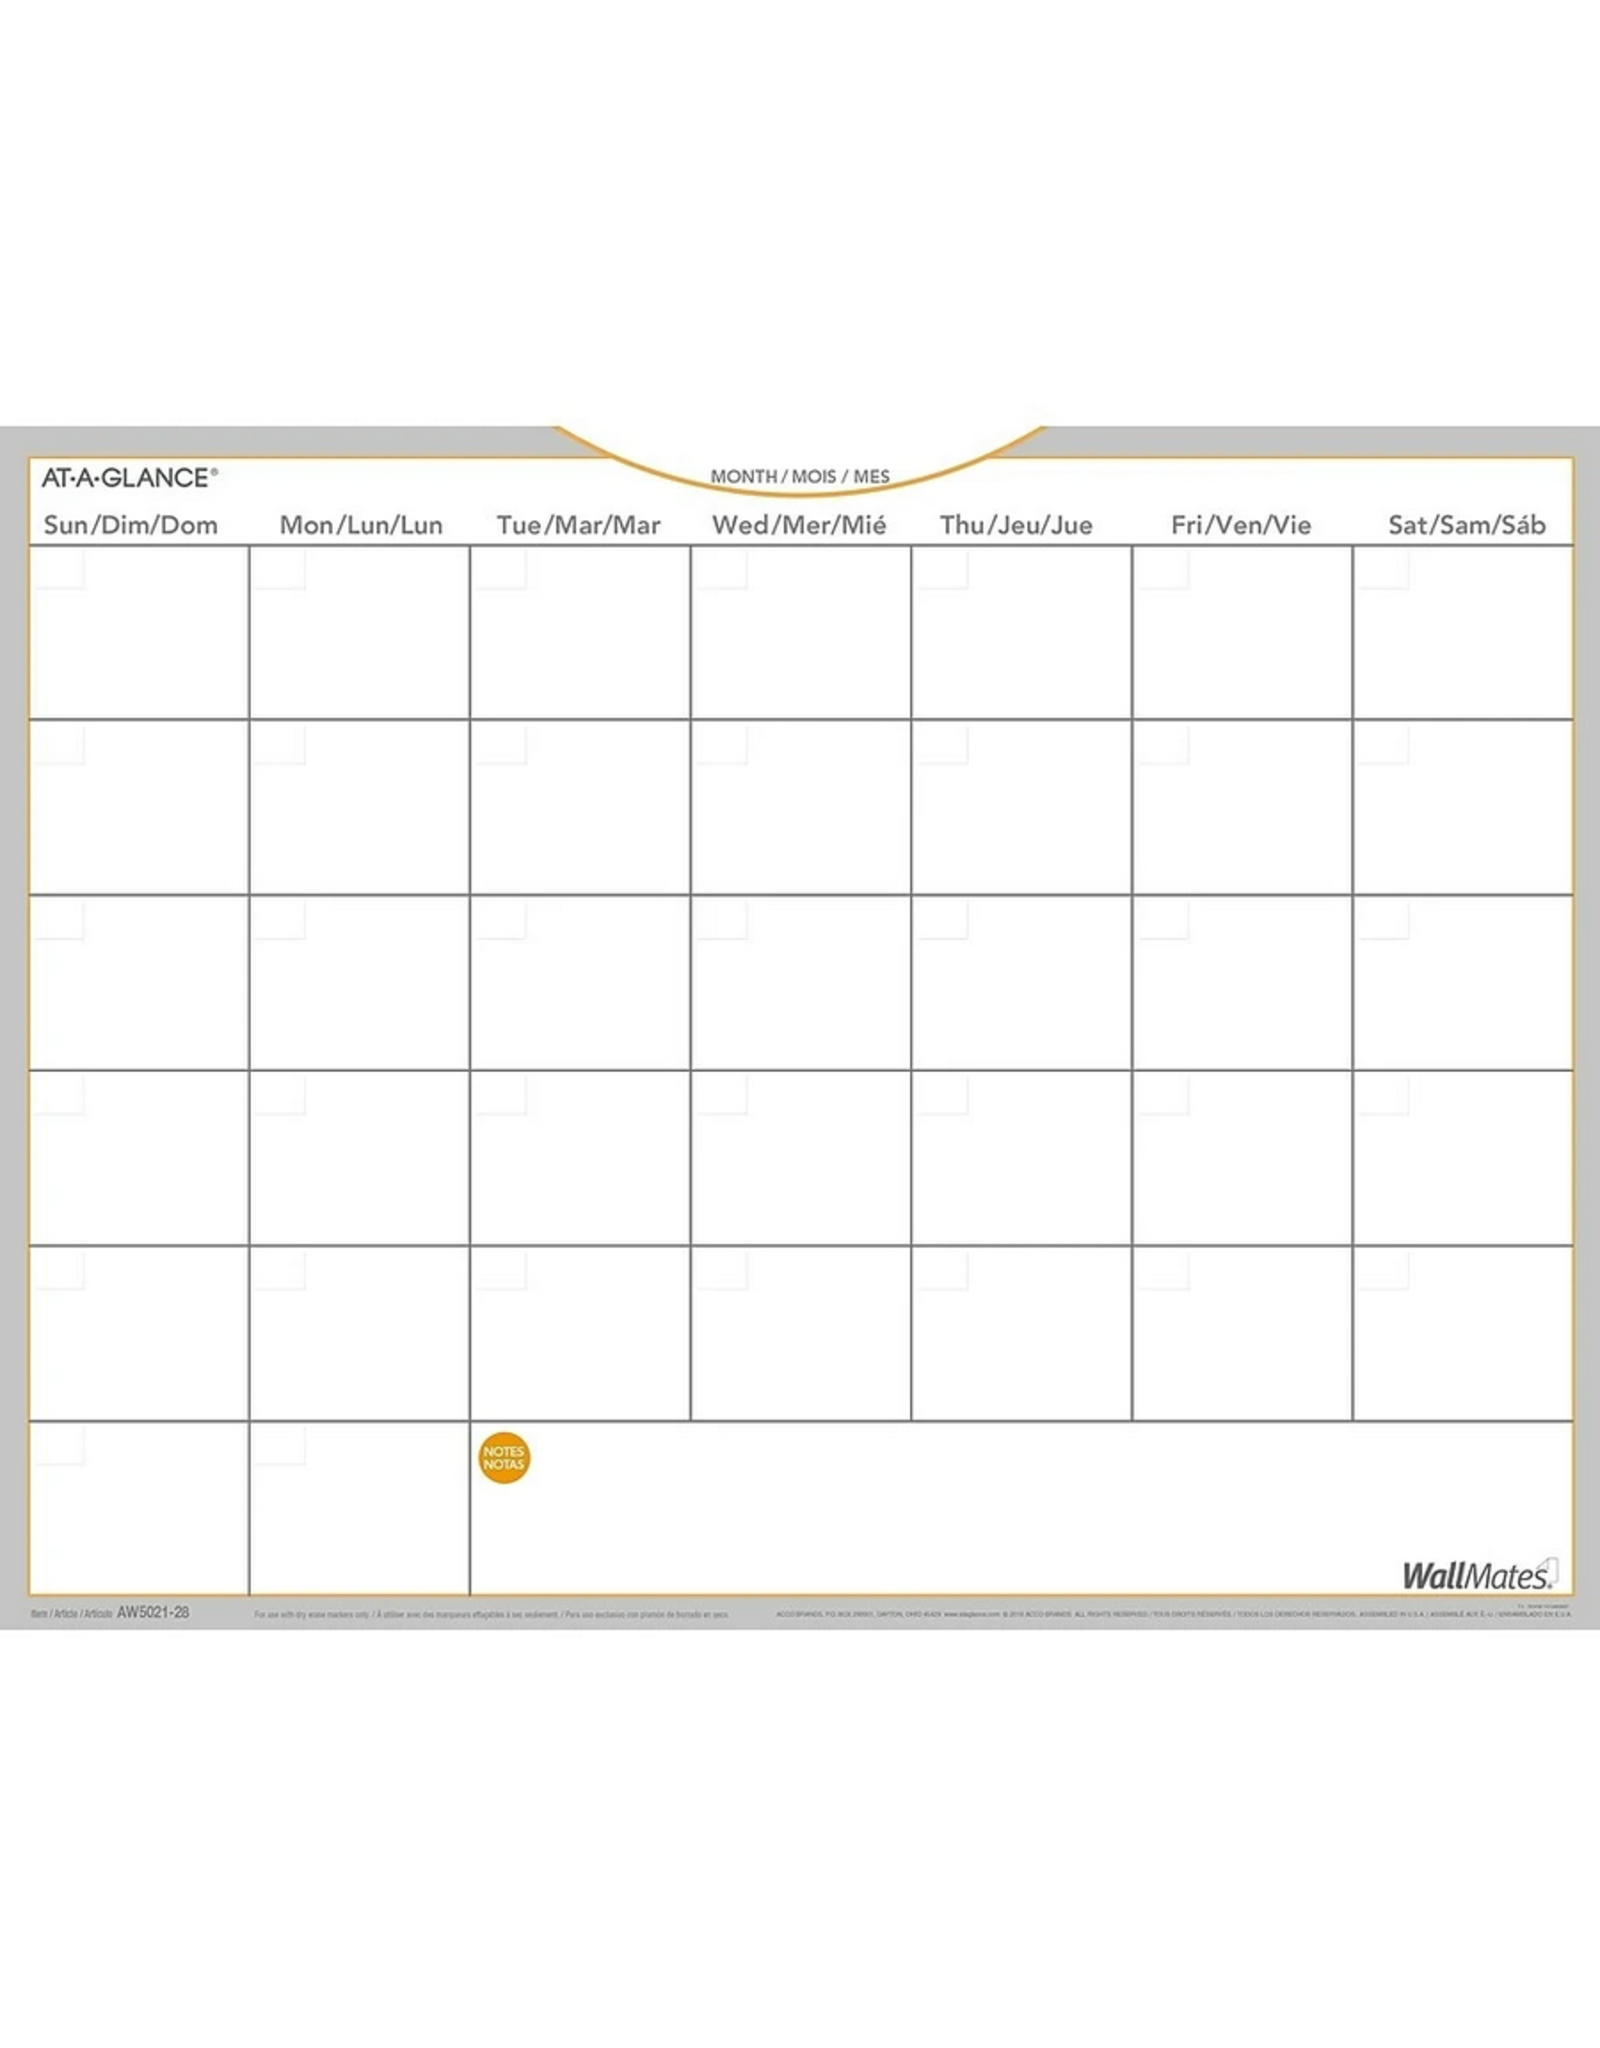 """At-A-Glance At-A-Glance WallMates Self-Adhesive Dry Erase Monthly Calendar, Bilingual, 24"""" x 18"""""""